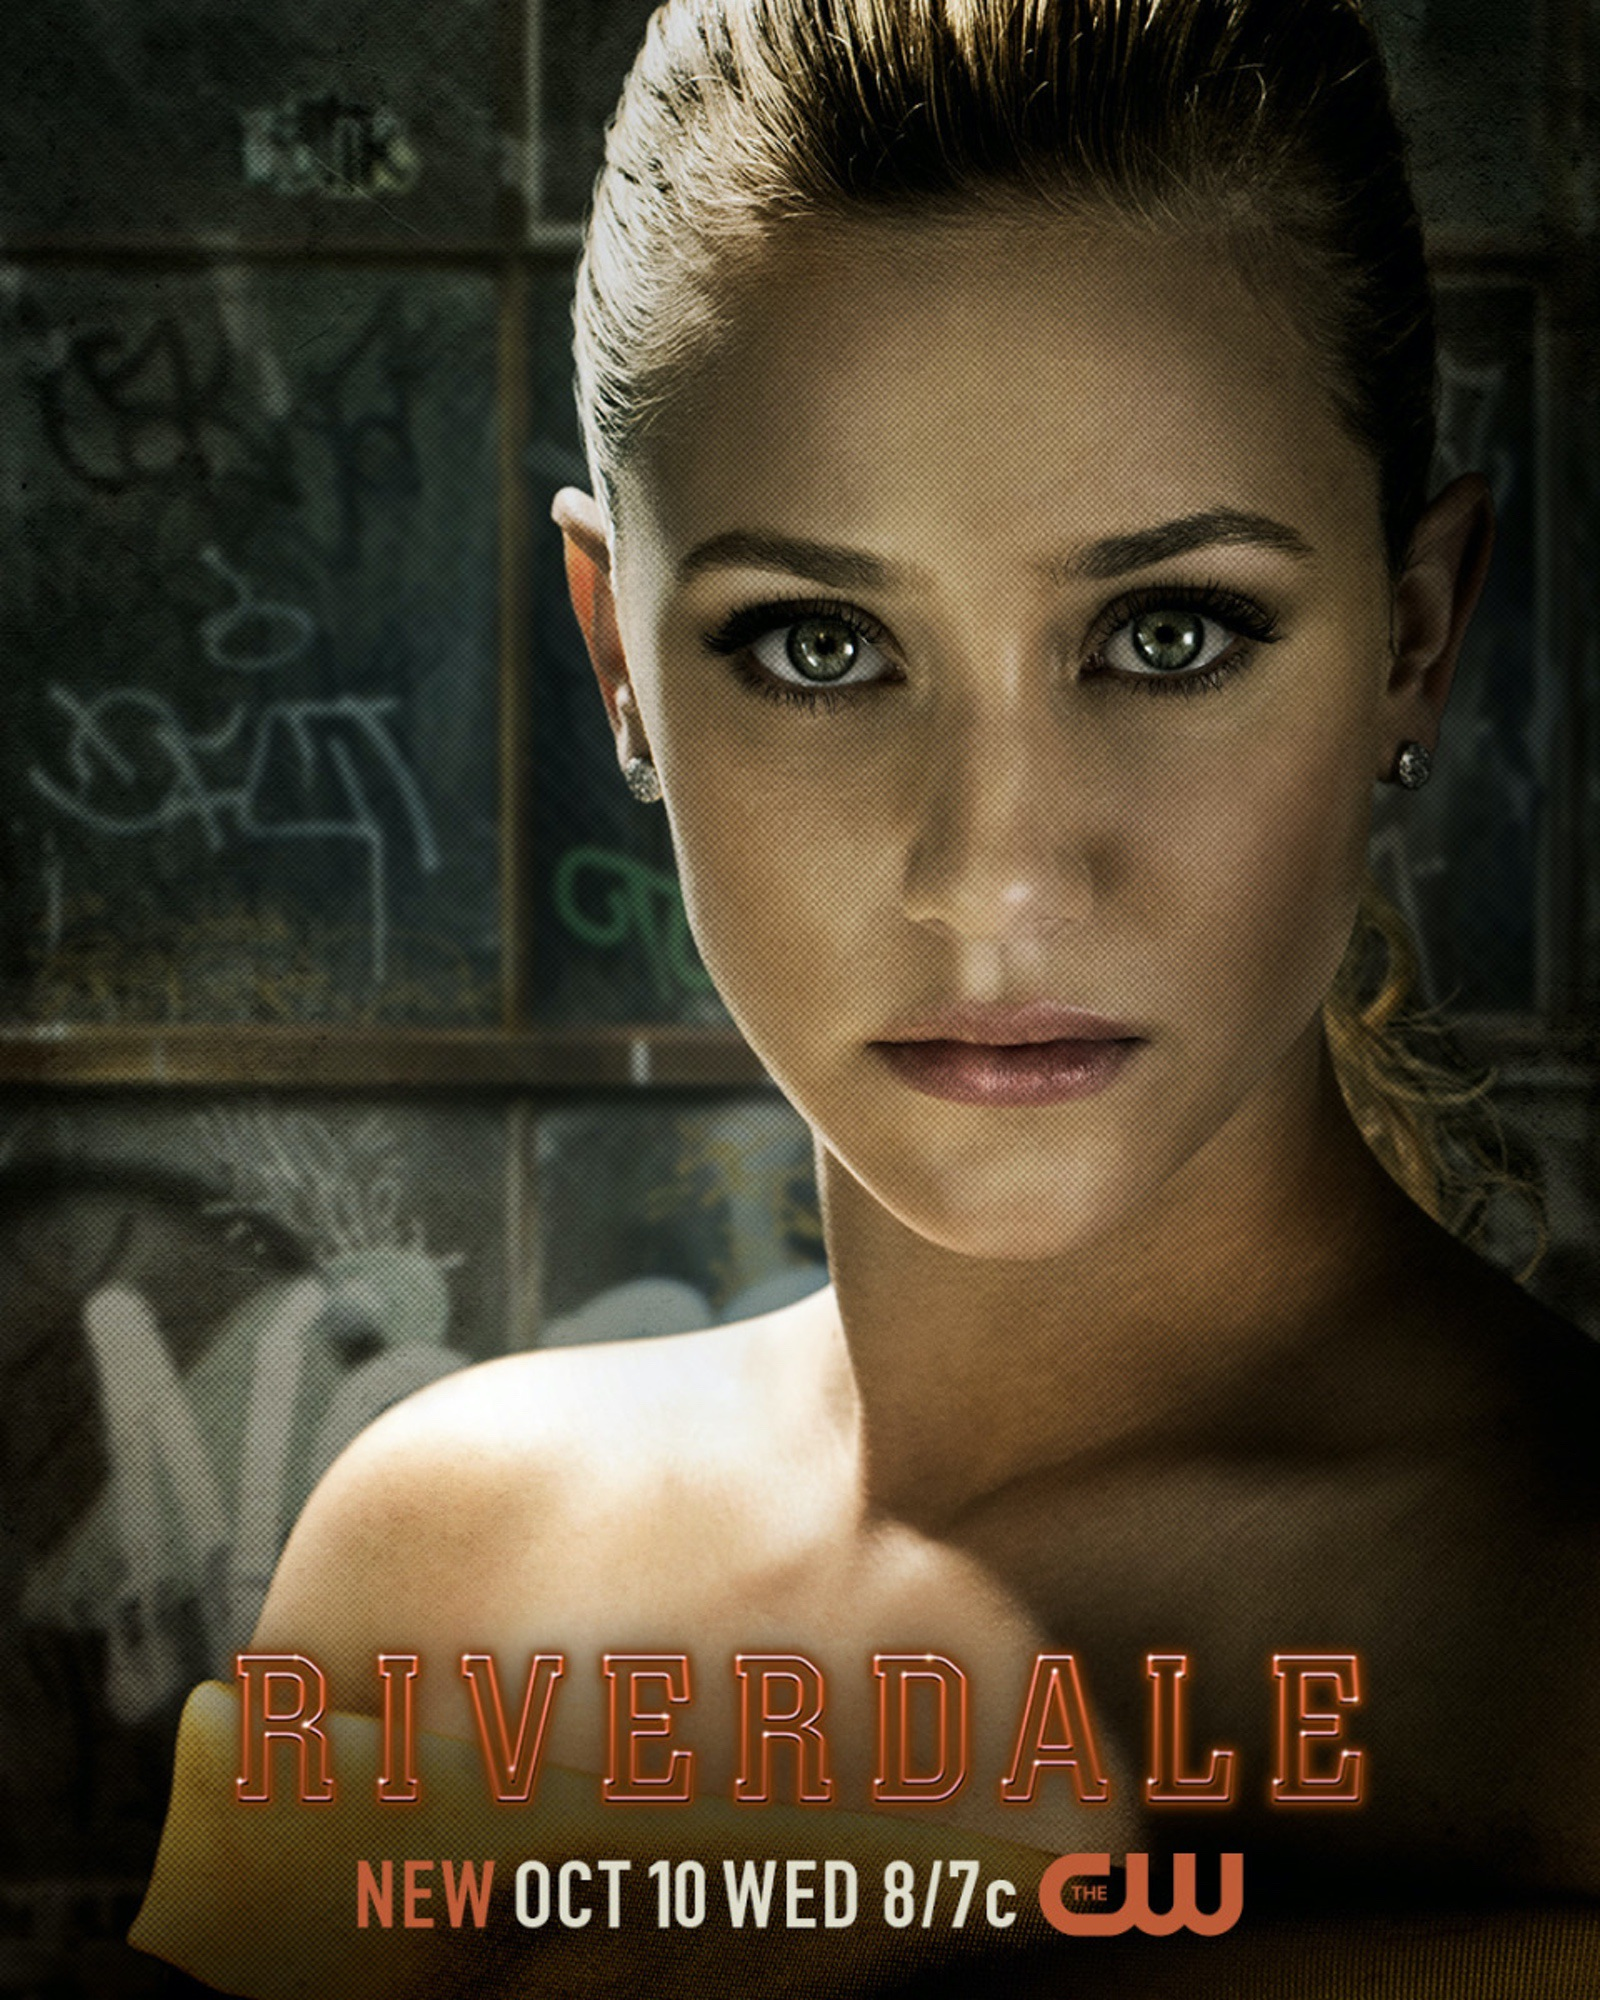 Riverdale Season 3 Promo Posters Dial Up the Angst | The Nerdy